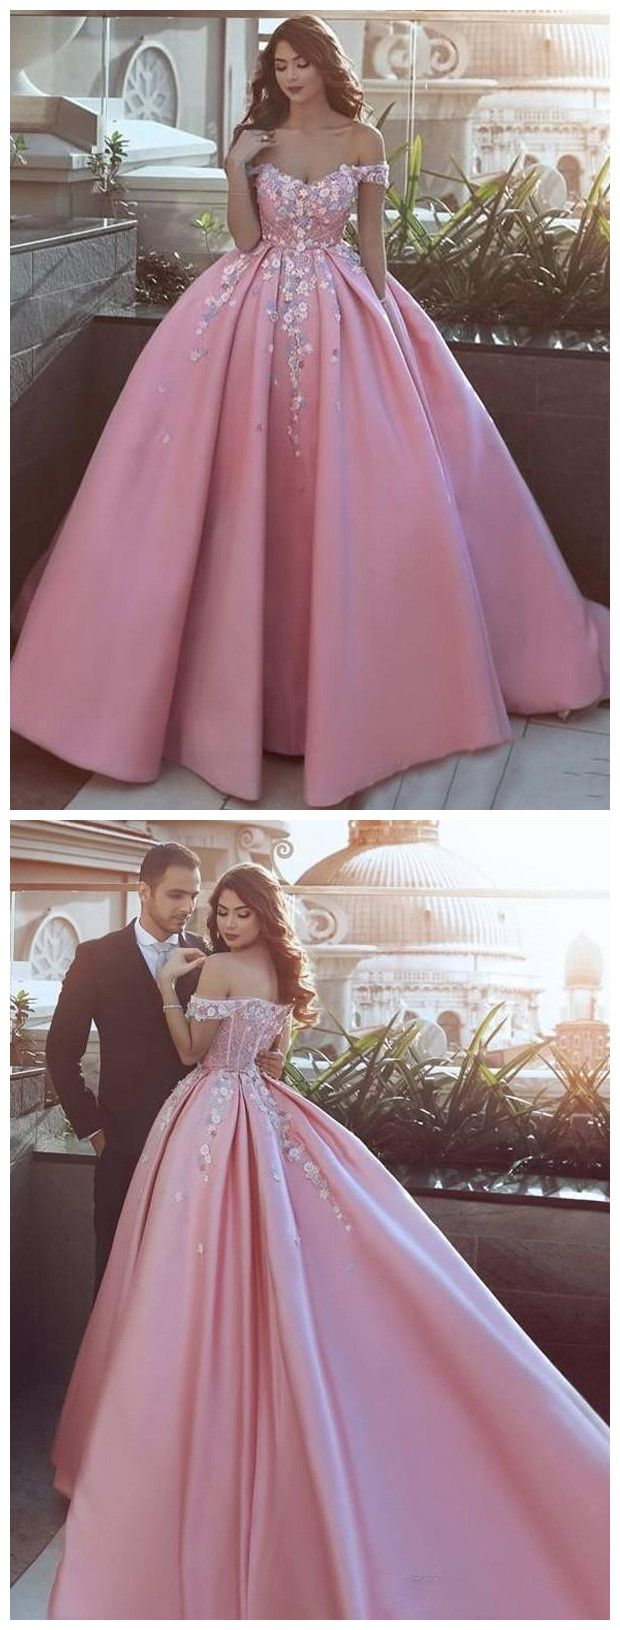 Ball gowns offtheshoulder long prom dress sweepbrush train pink